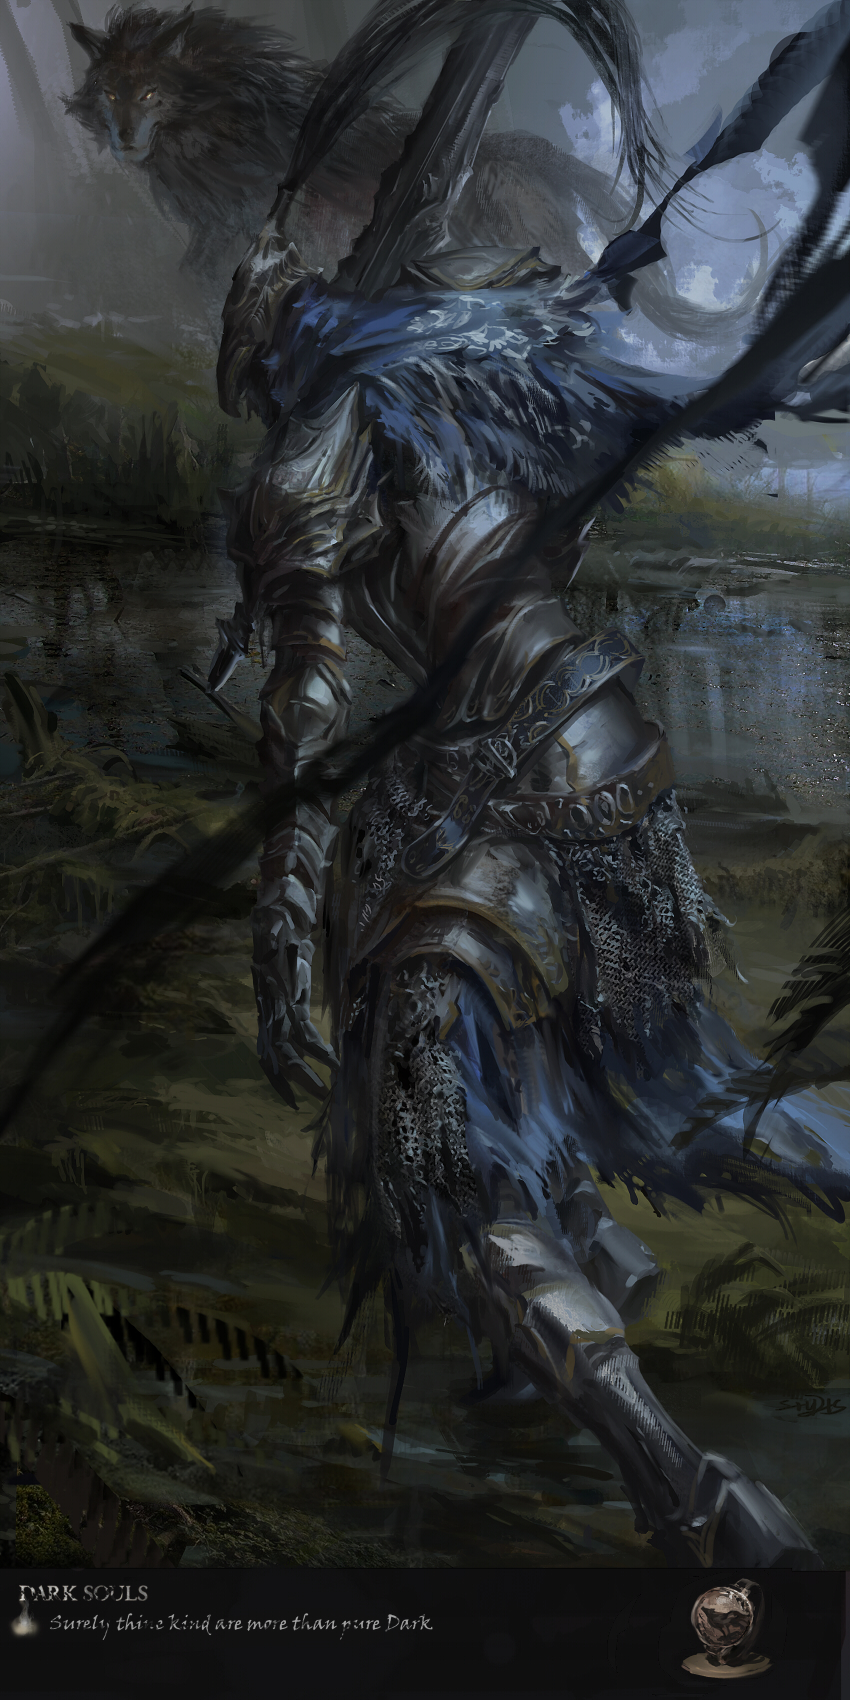 1boy animal arm_at_side armor artorias_the_abysswalker blue_capelet capelet copyright_name dark_souls english_text facing_away faulds full_armor full_body gauntlets great_grey_wolf_sif greatsword greaves helmet highres holding holding_sword holding_weapon hood knight leaning_forward looking_at_another male_focus outdoors over_shoulder pauldrons plume shoulder_armor souls_(from_software) standing stu_dts sword walking water weapon wolf yellow_eyes